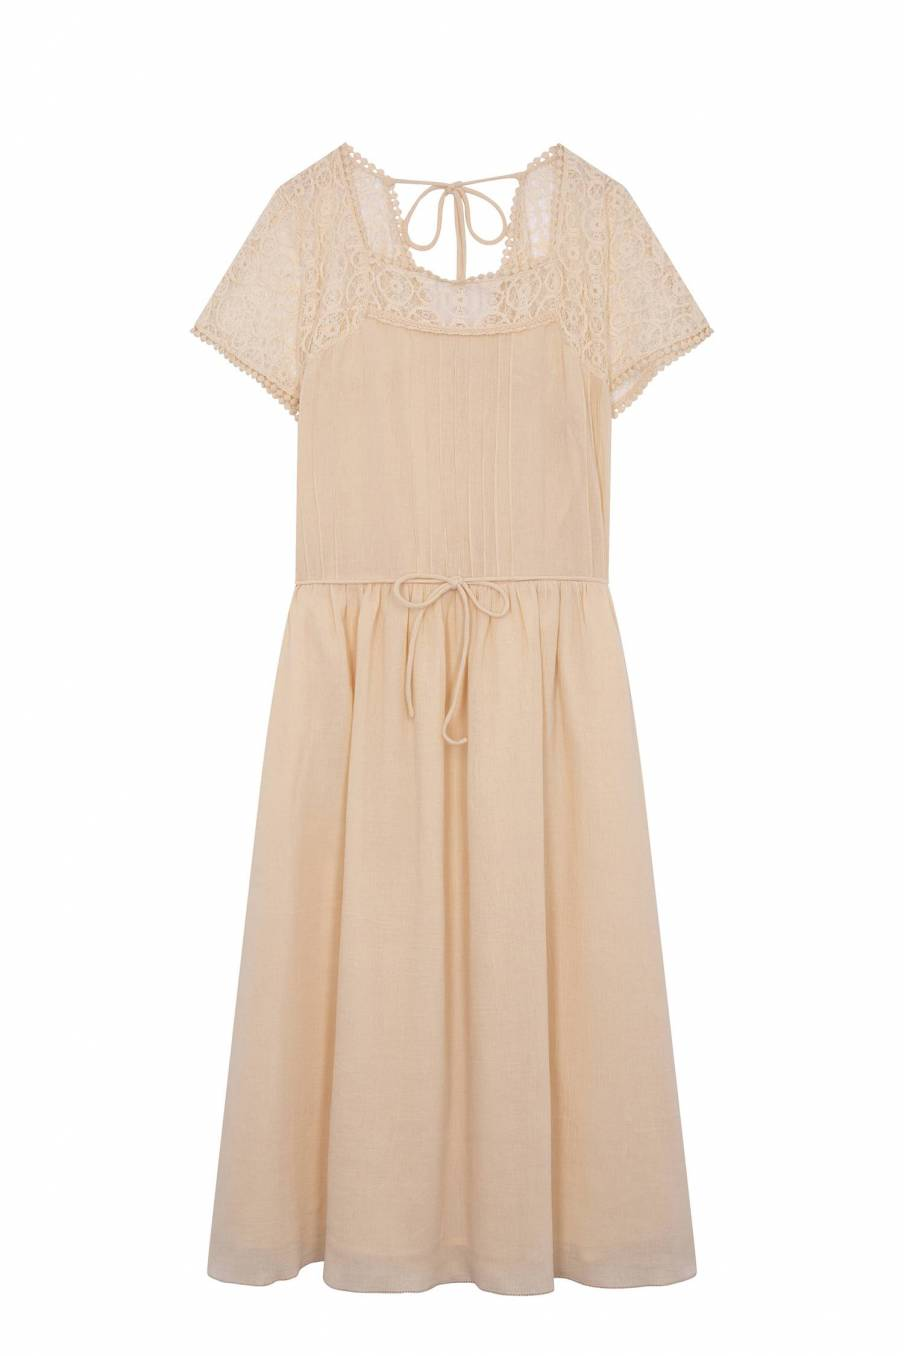 Dress Adela Cream